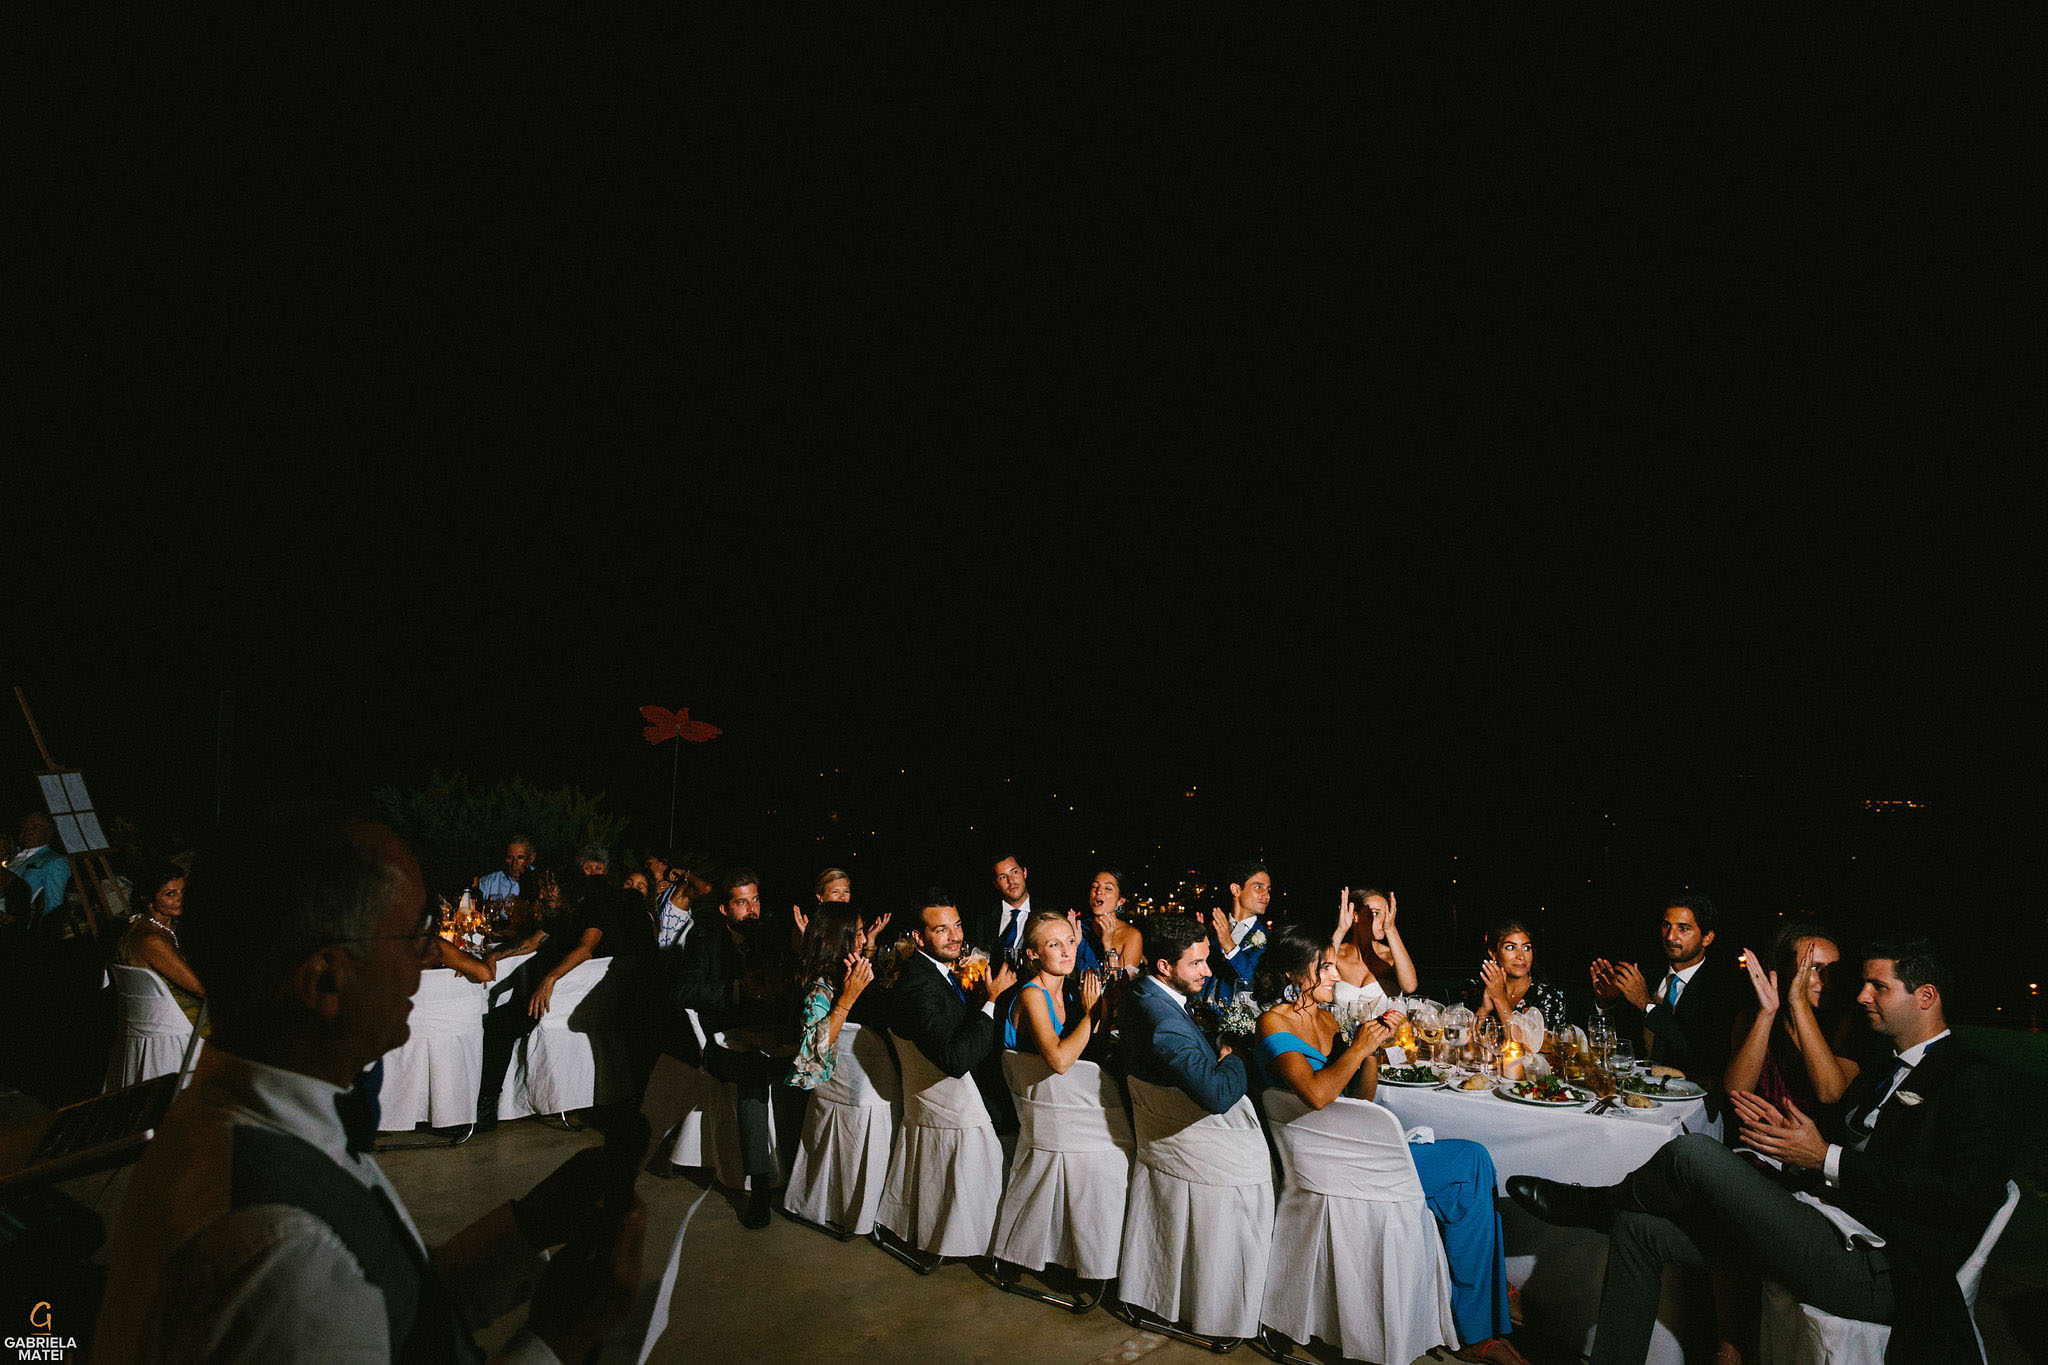 Wedding guest sat at long table outdoor at night